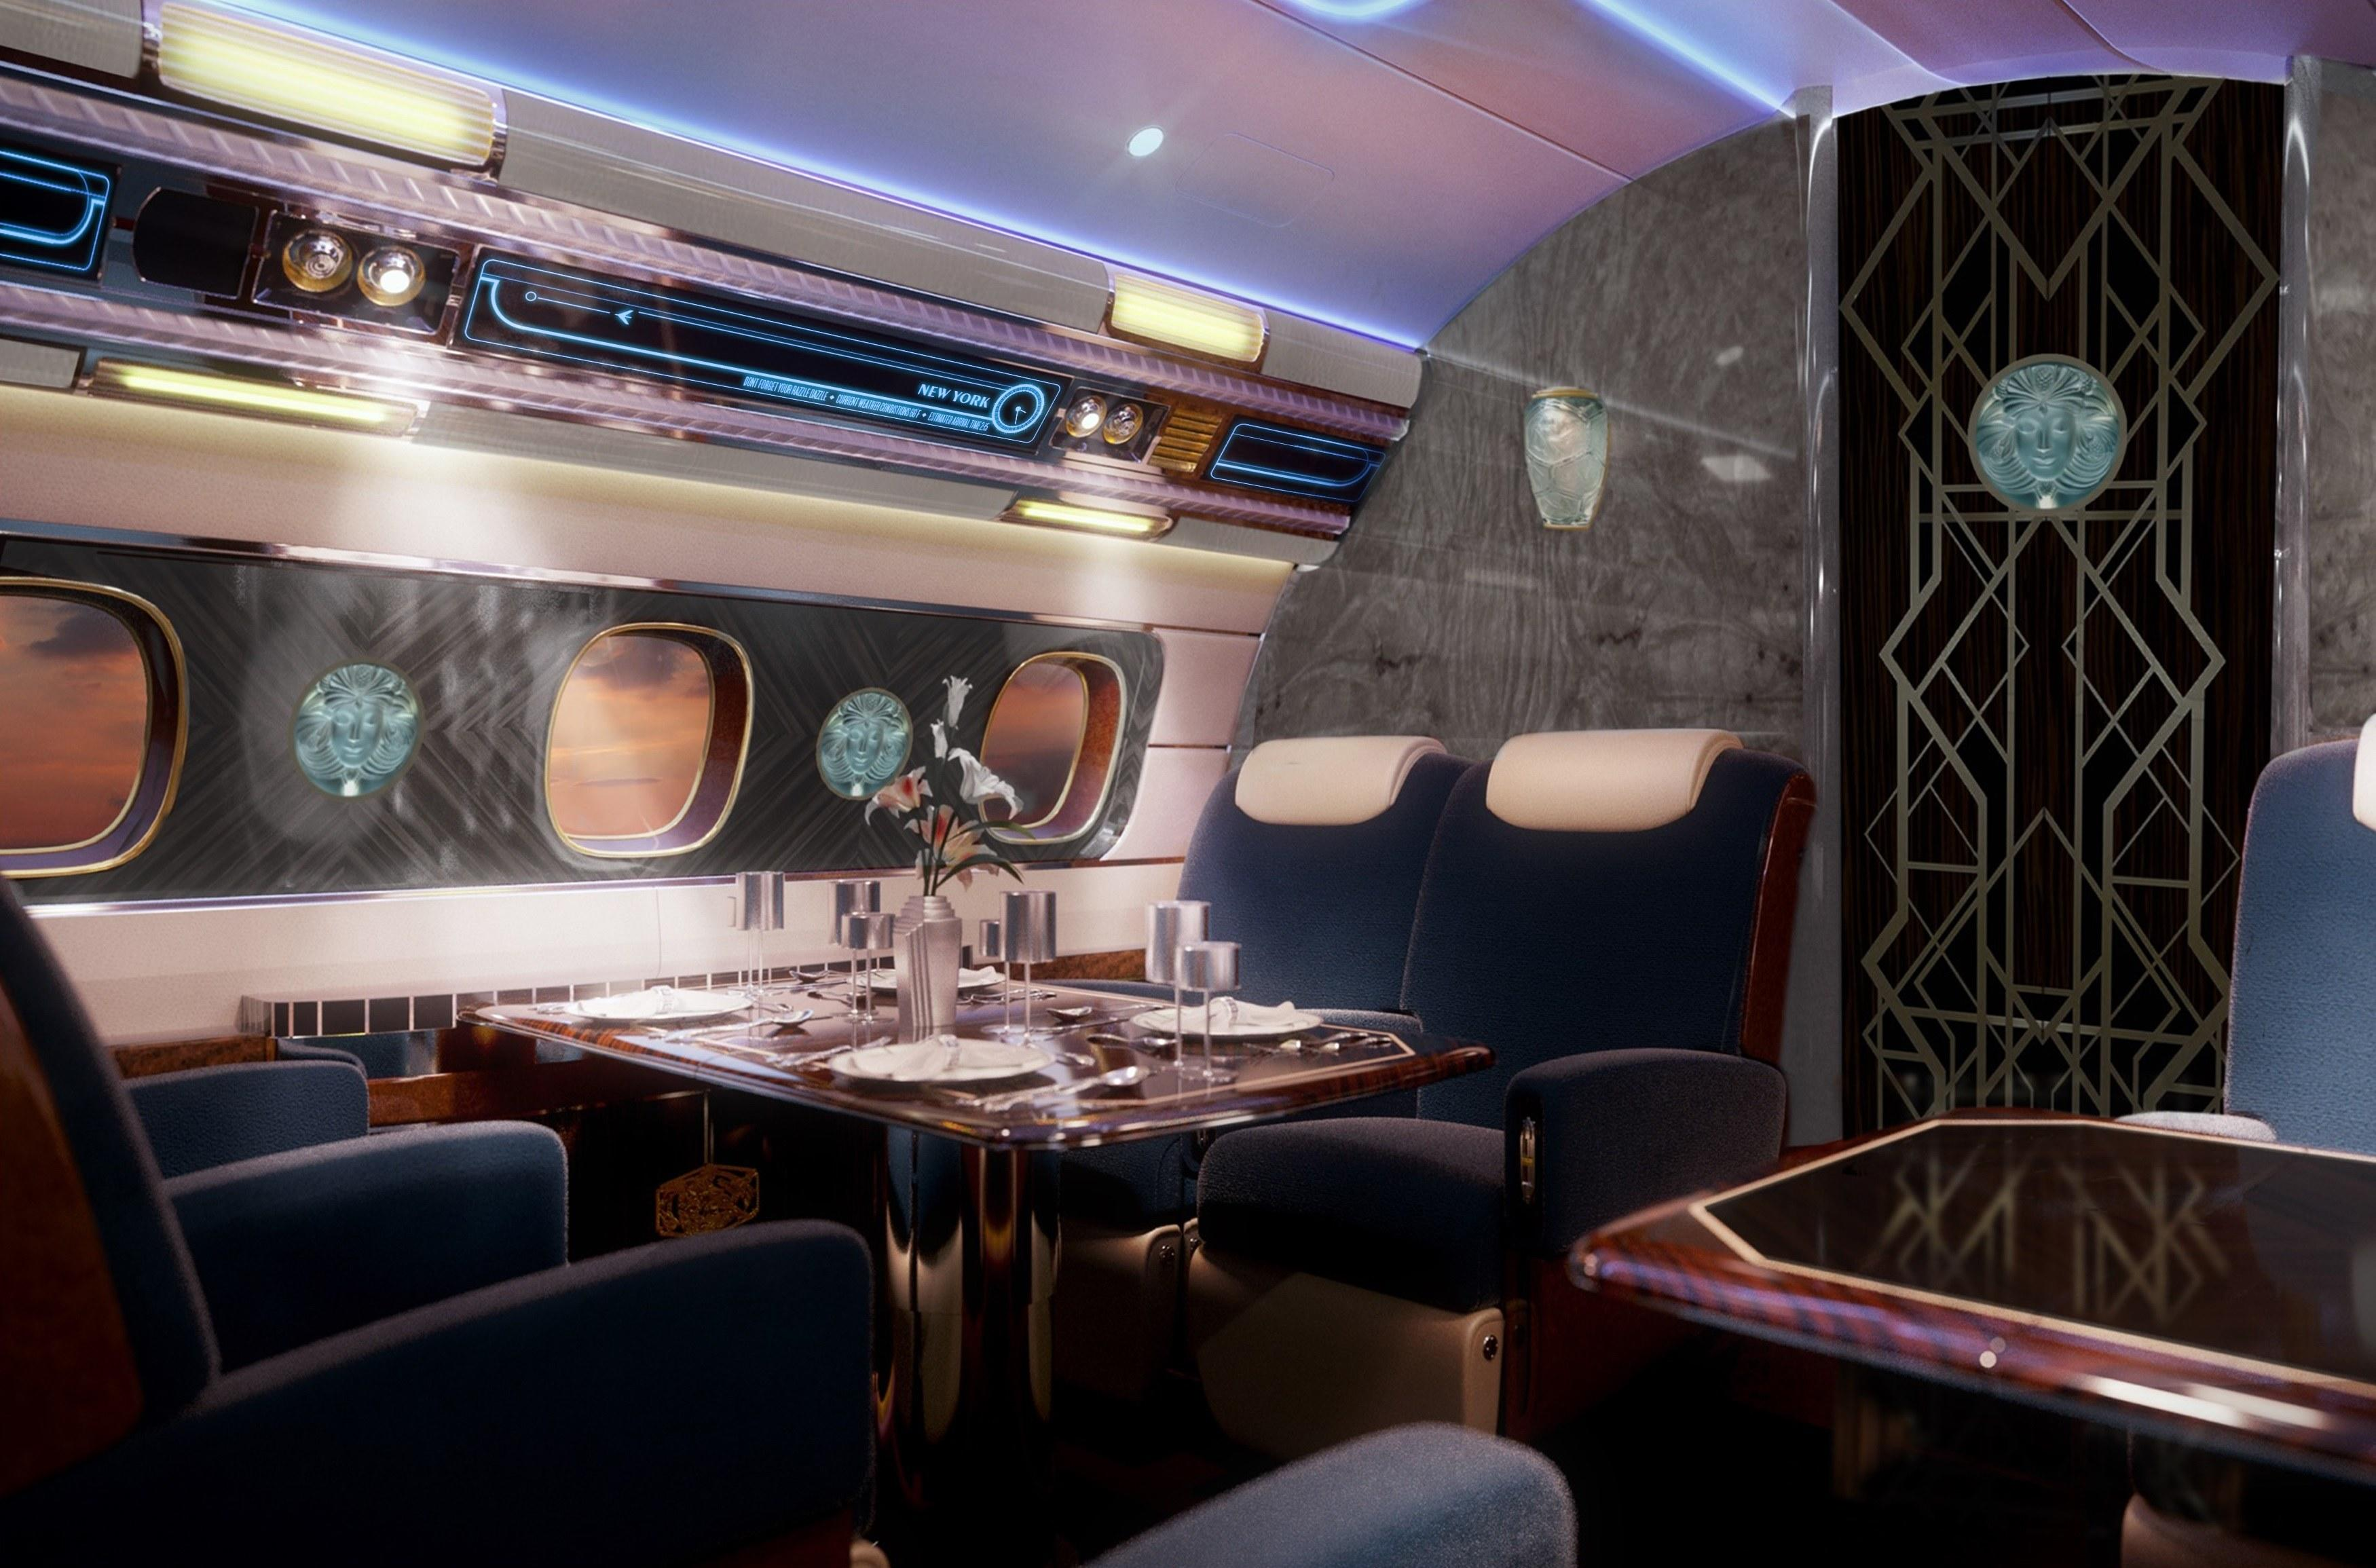 Deco Design New York embraer's newest $80 million private jet is inspiredart